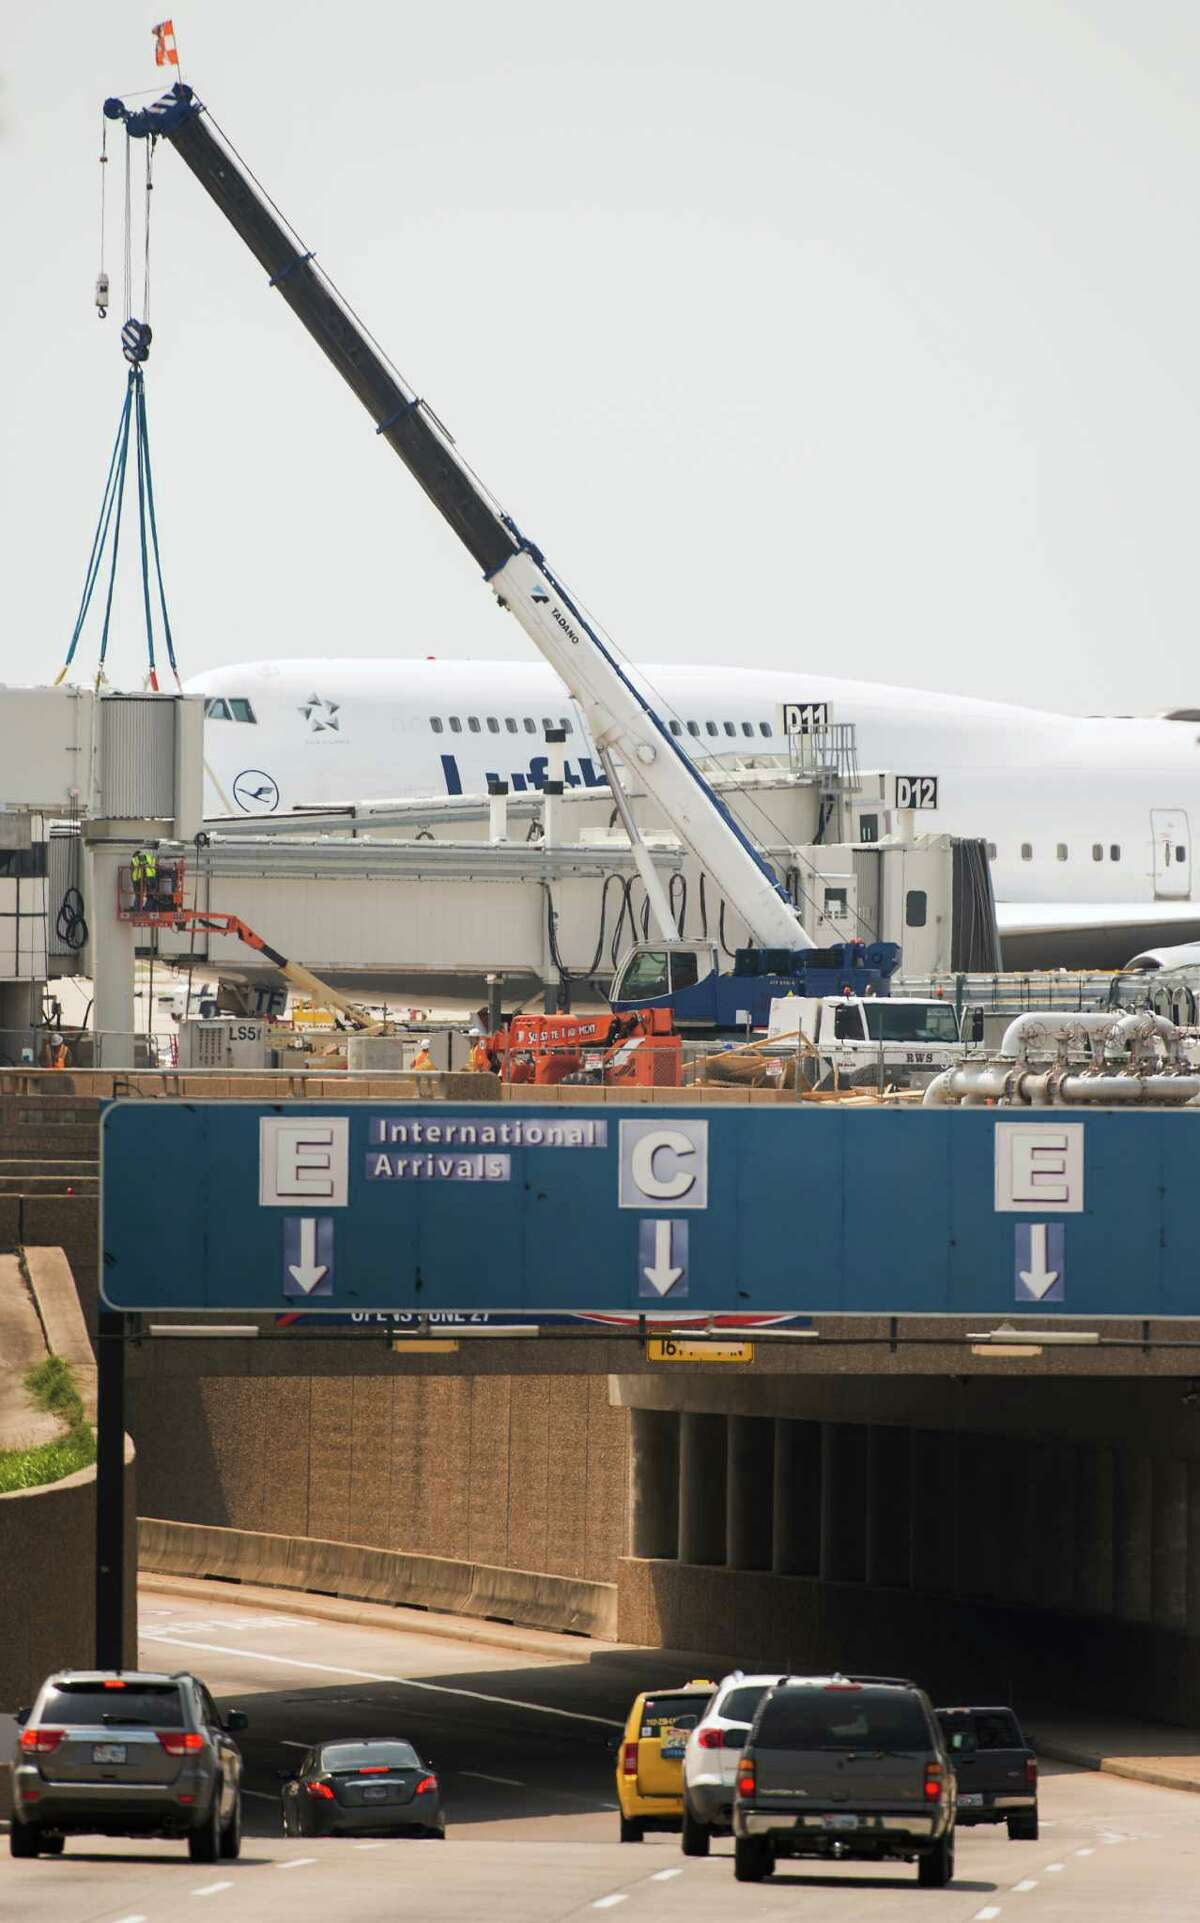 Special jet bridges are being installed at Bush Intercontinental Airport for passengers to board Lufthansa's double-deck Airbus A380. The giant jet is scheduled to arrive in Houston Aug. 1.